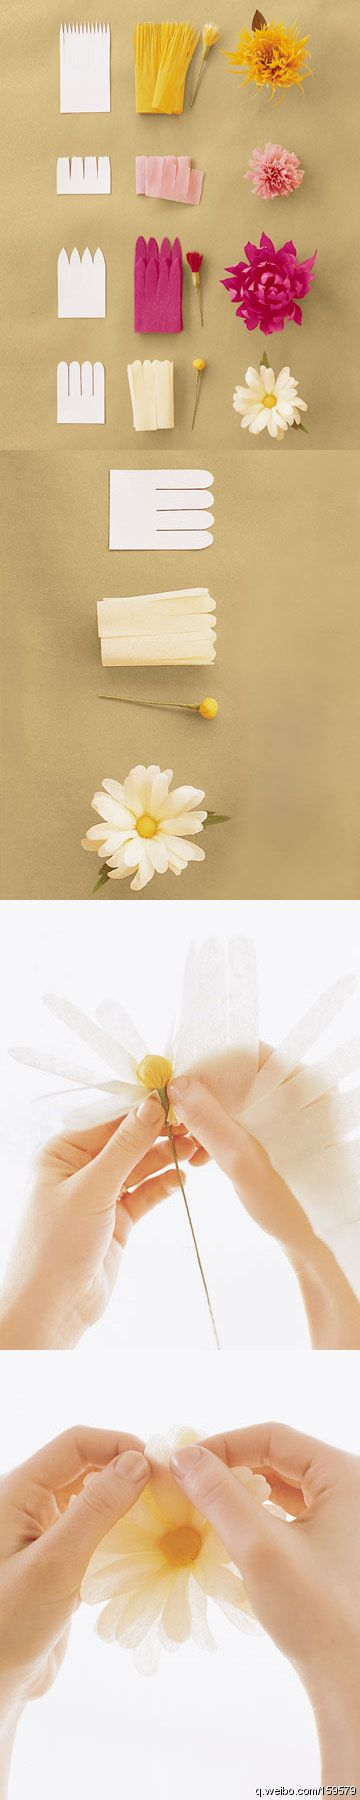 shows the different  cuts of papers for the different flowers